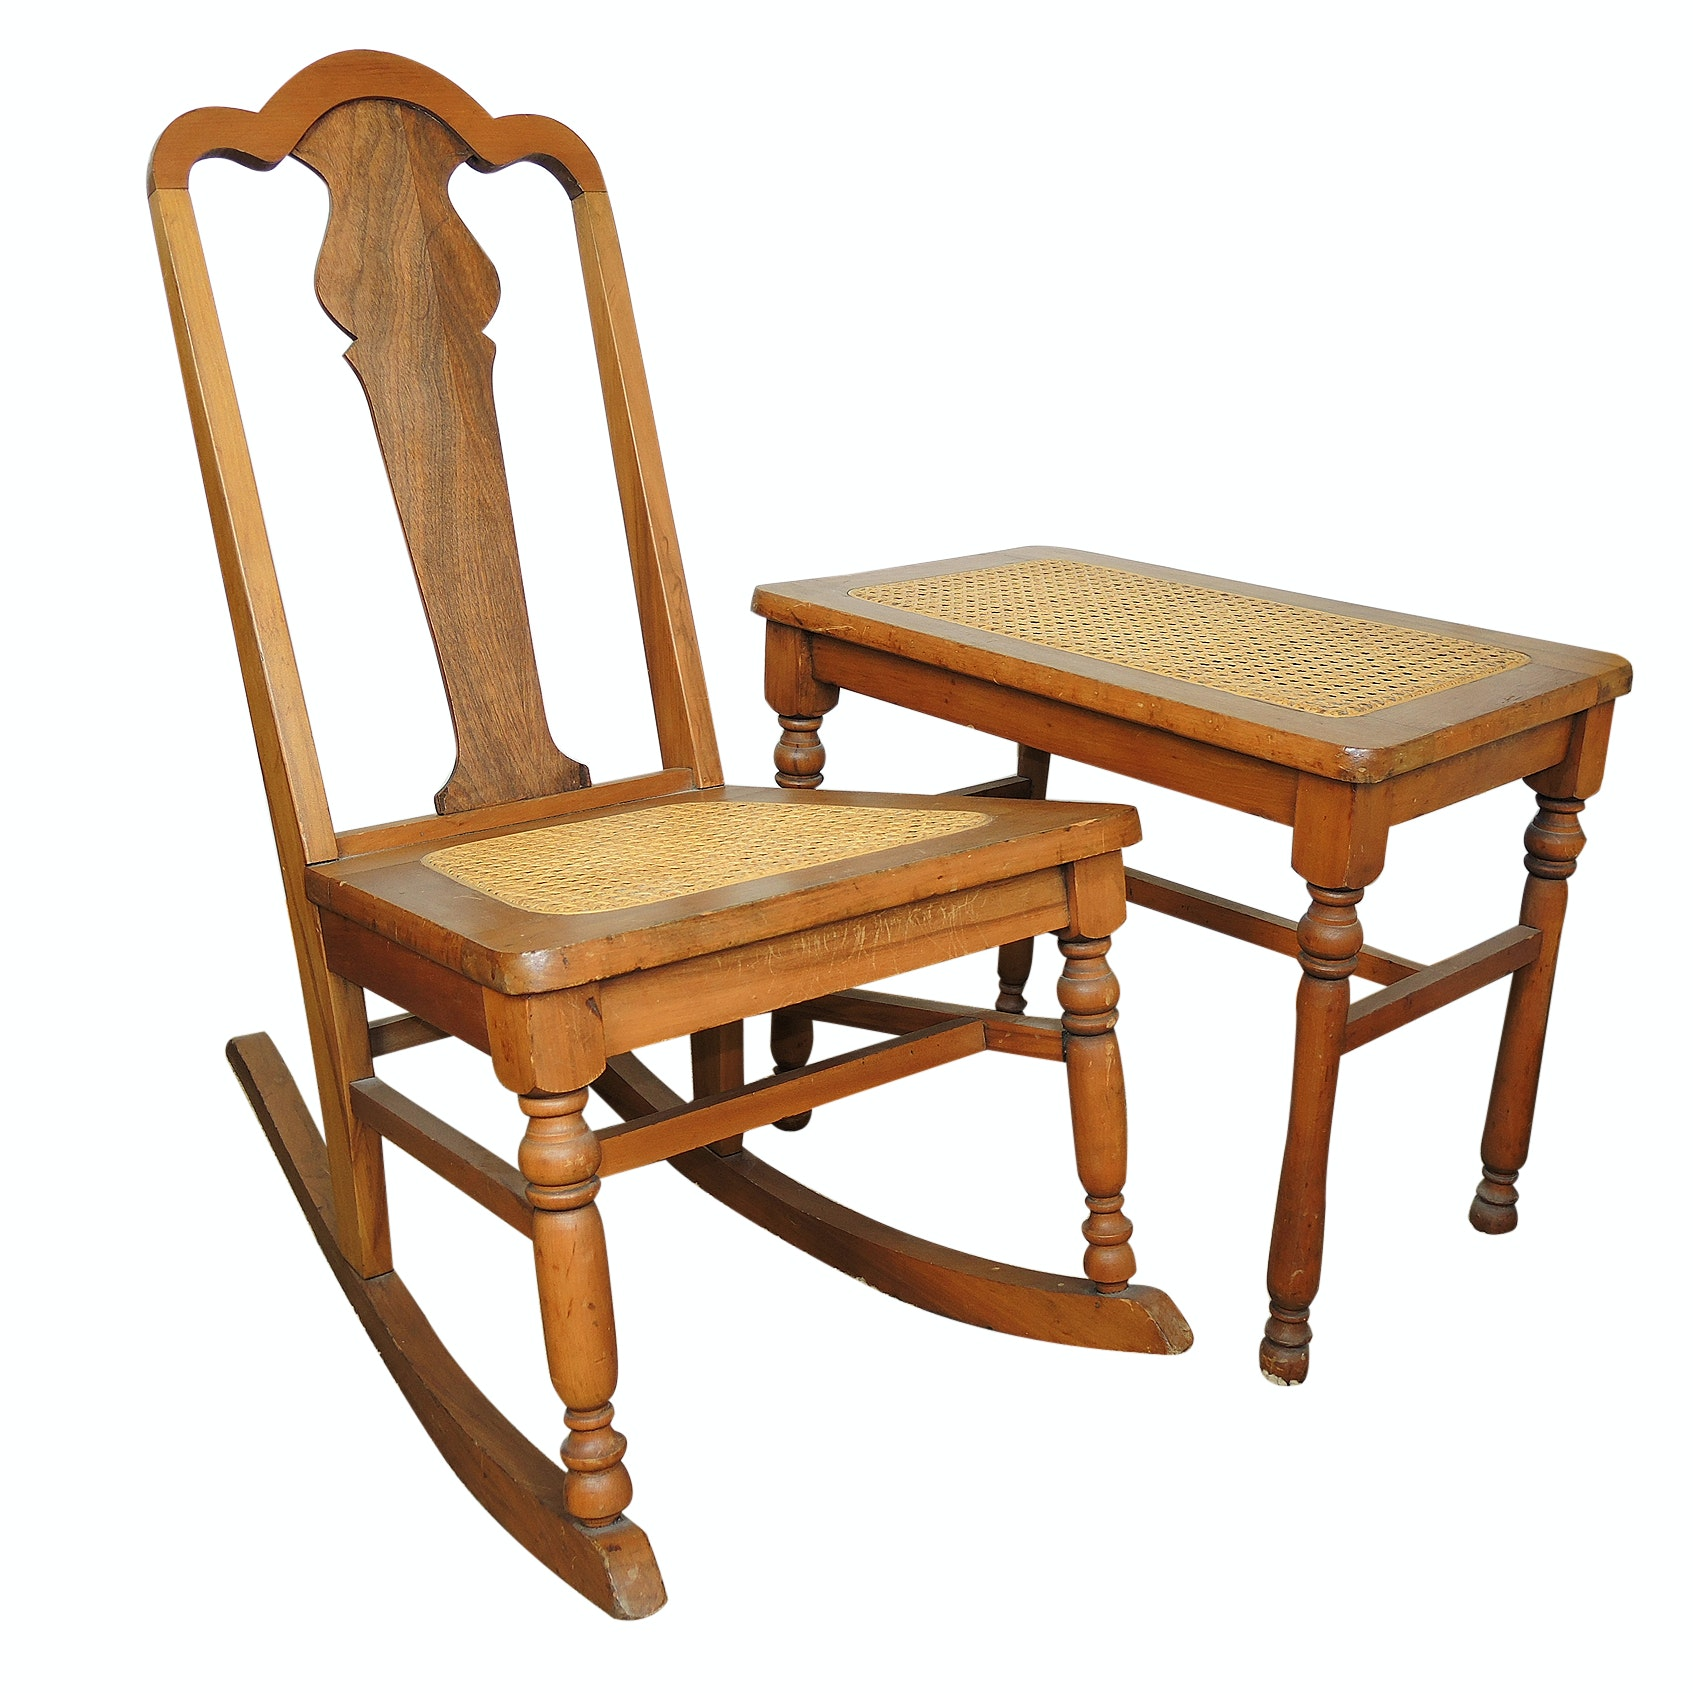 Sewing/Nursing Rocker and Bench with Caned Seating